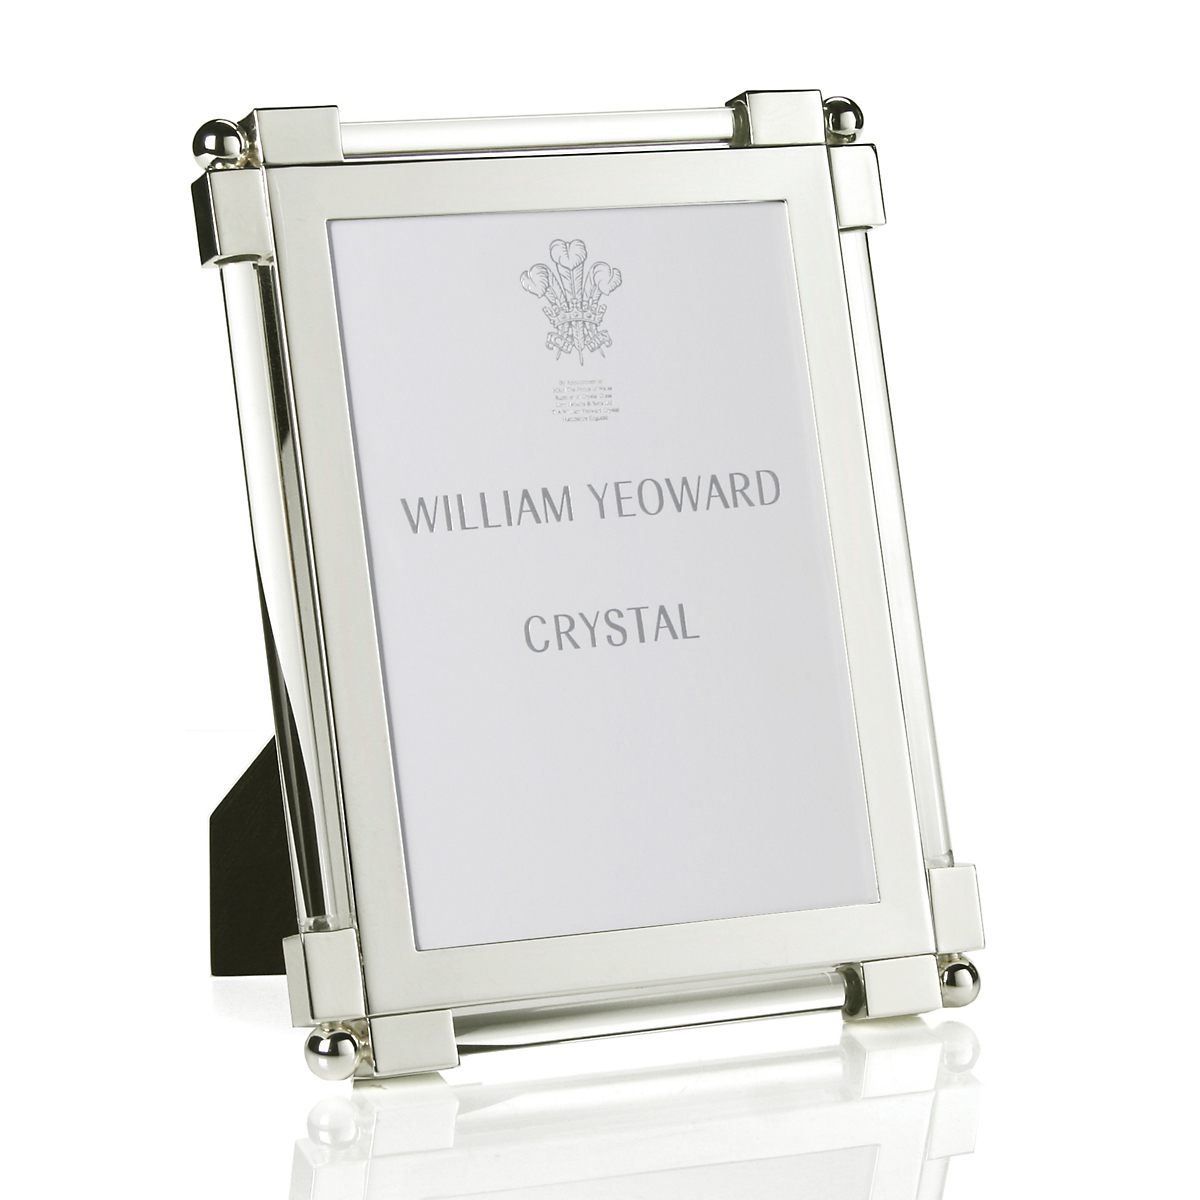 William Yeoward Crystal Classic Glass Clear Frame, 5x7